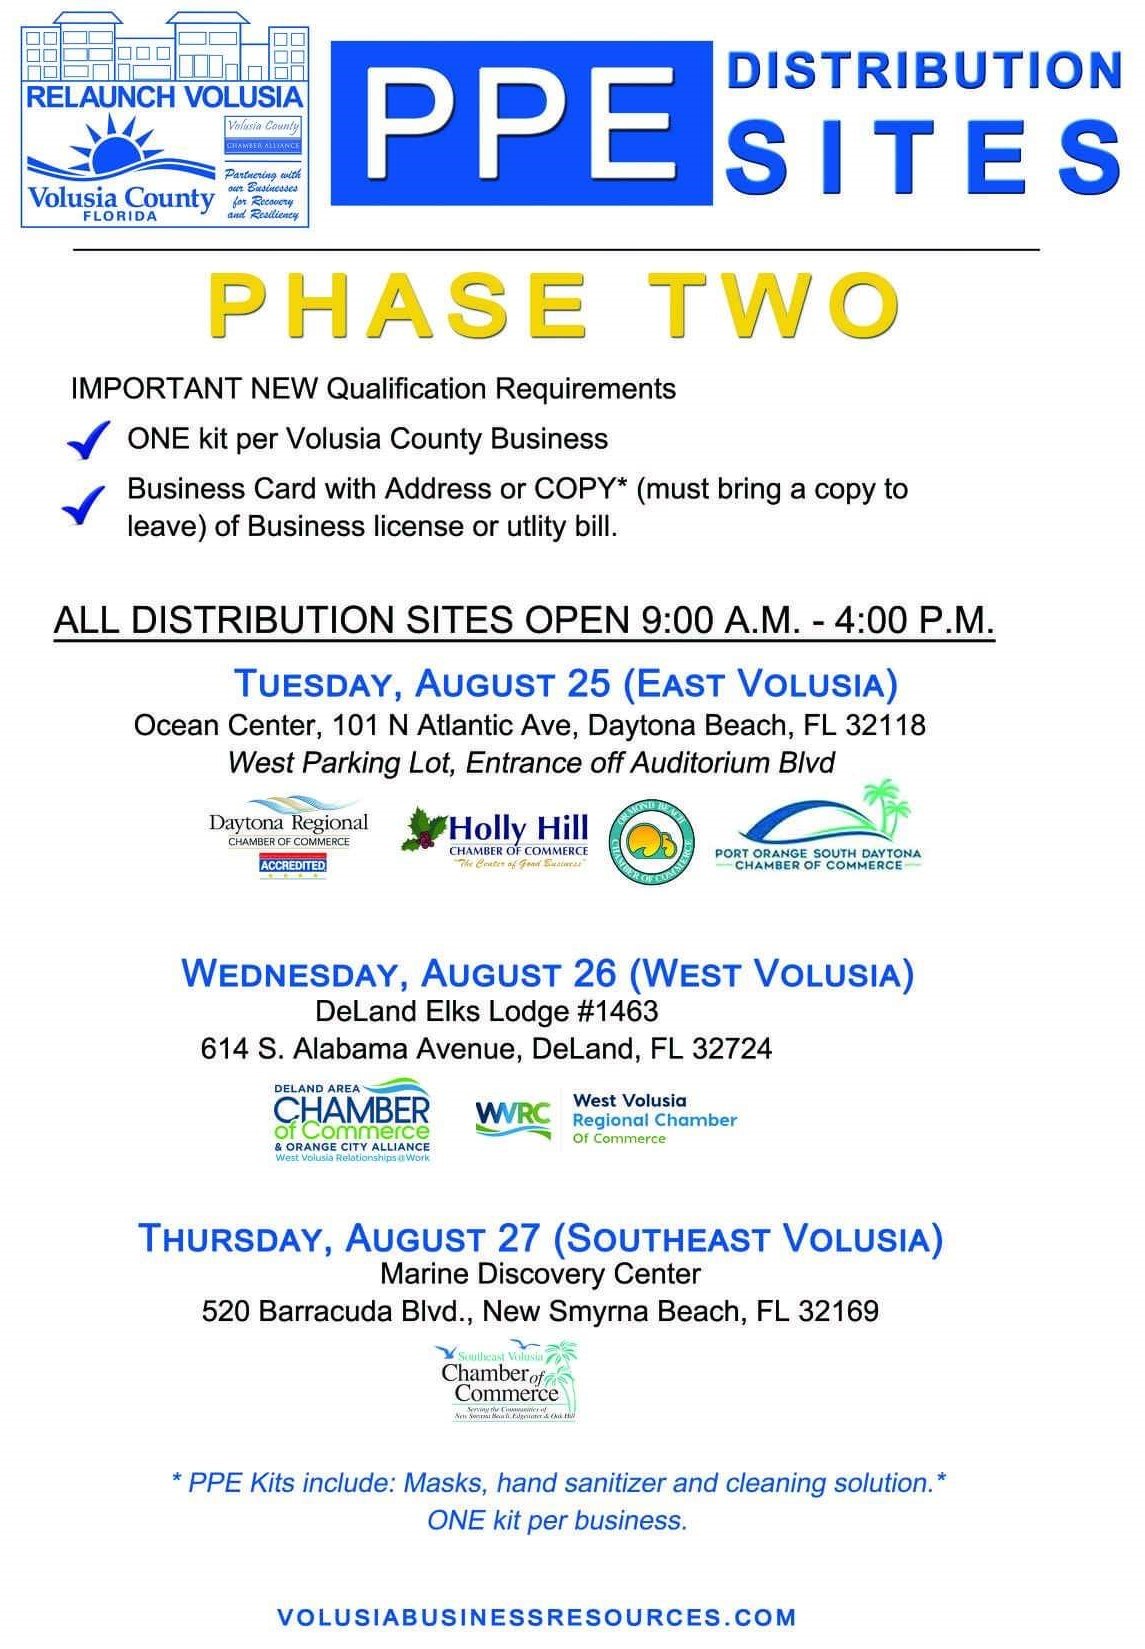 PPE Distribution for Businesses - Phase Two